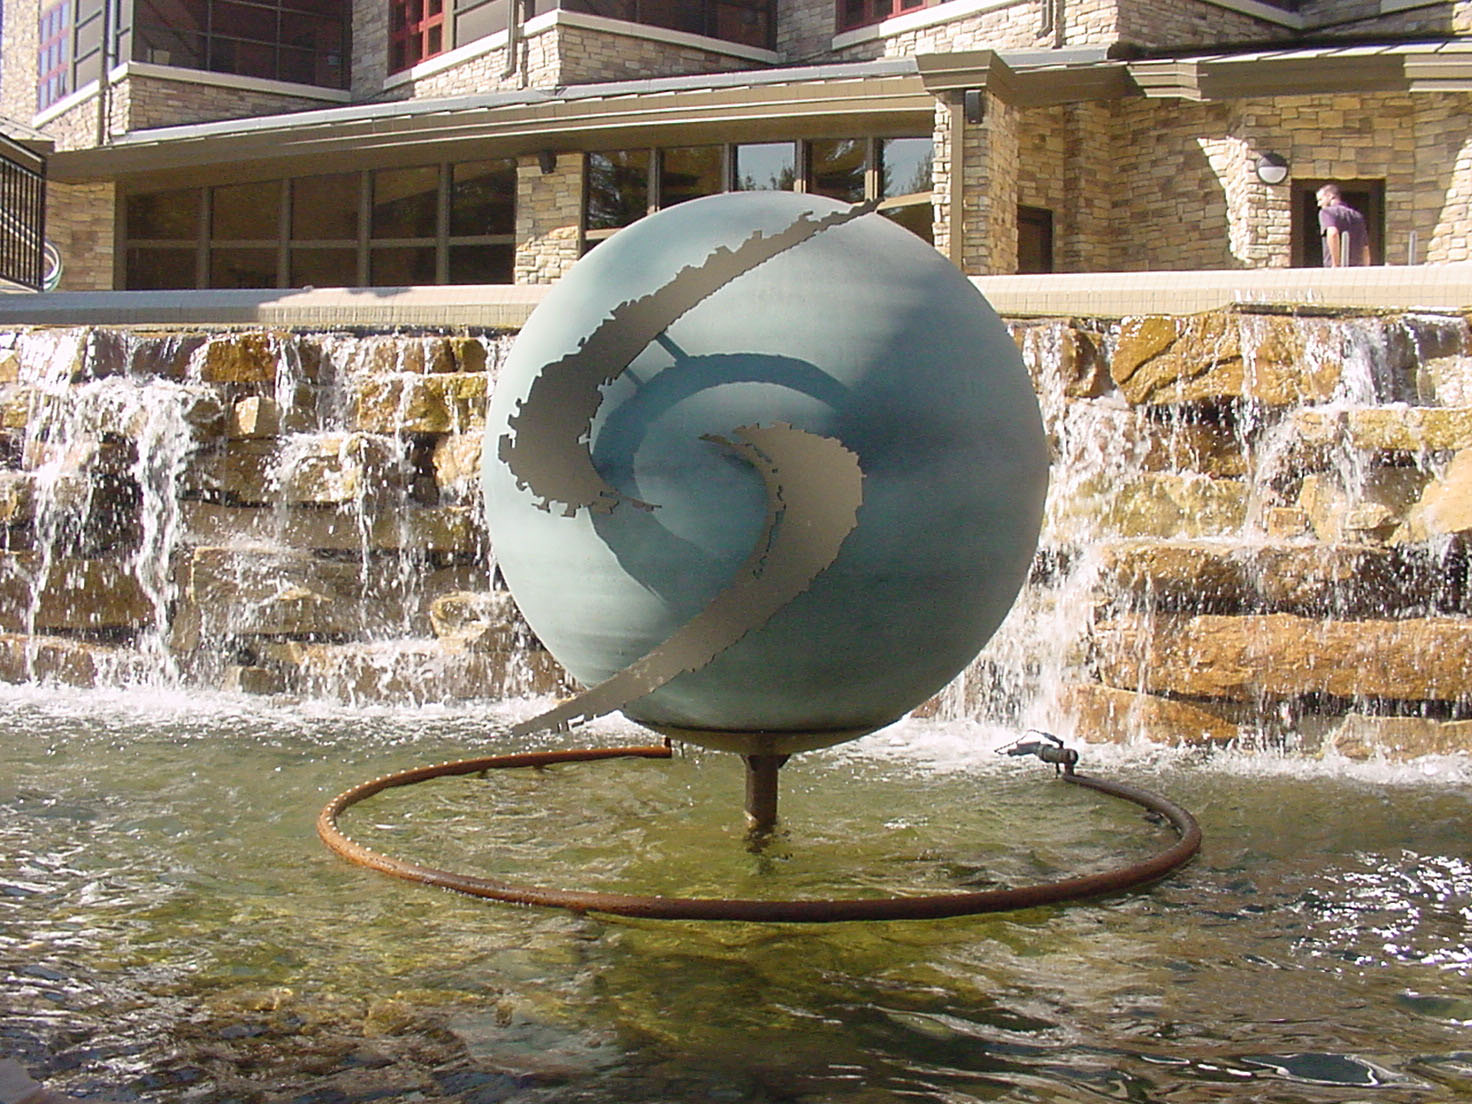 Spherical statue in fountain area at Sundara Spa in Wisconsin Dells, WI